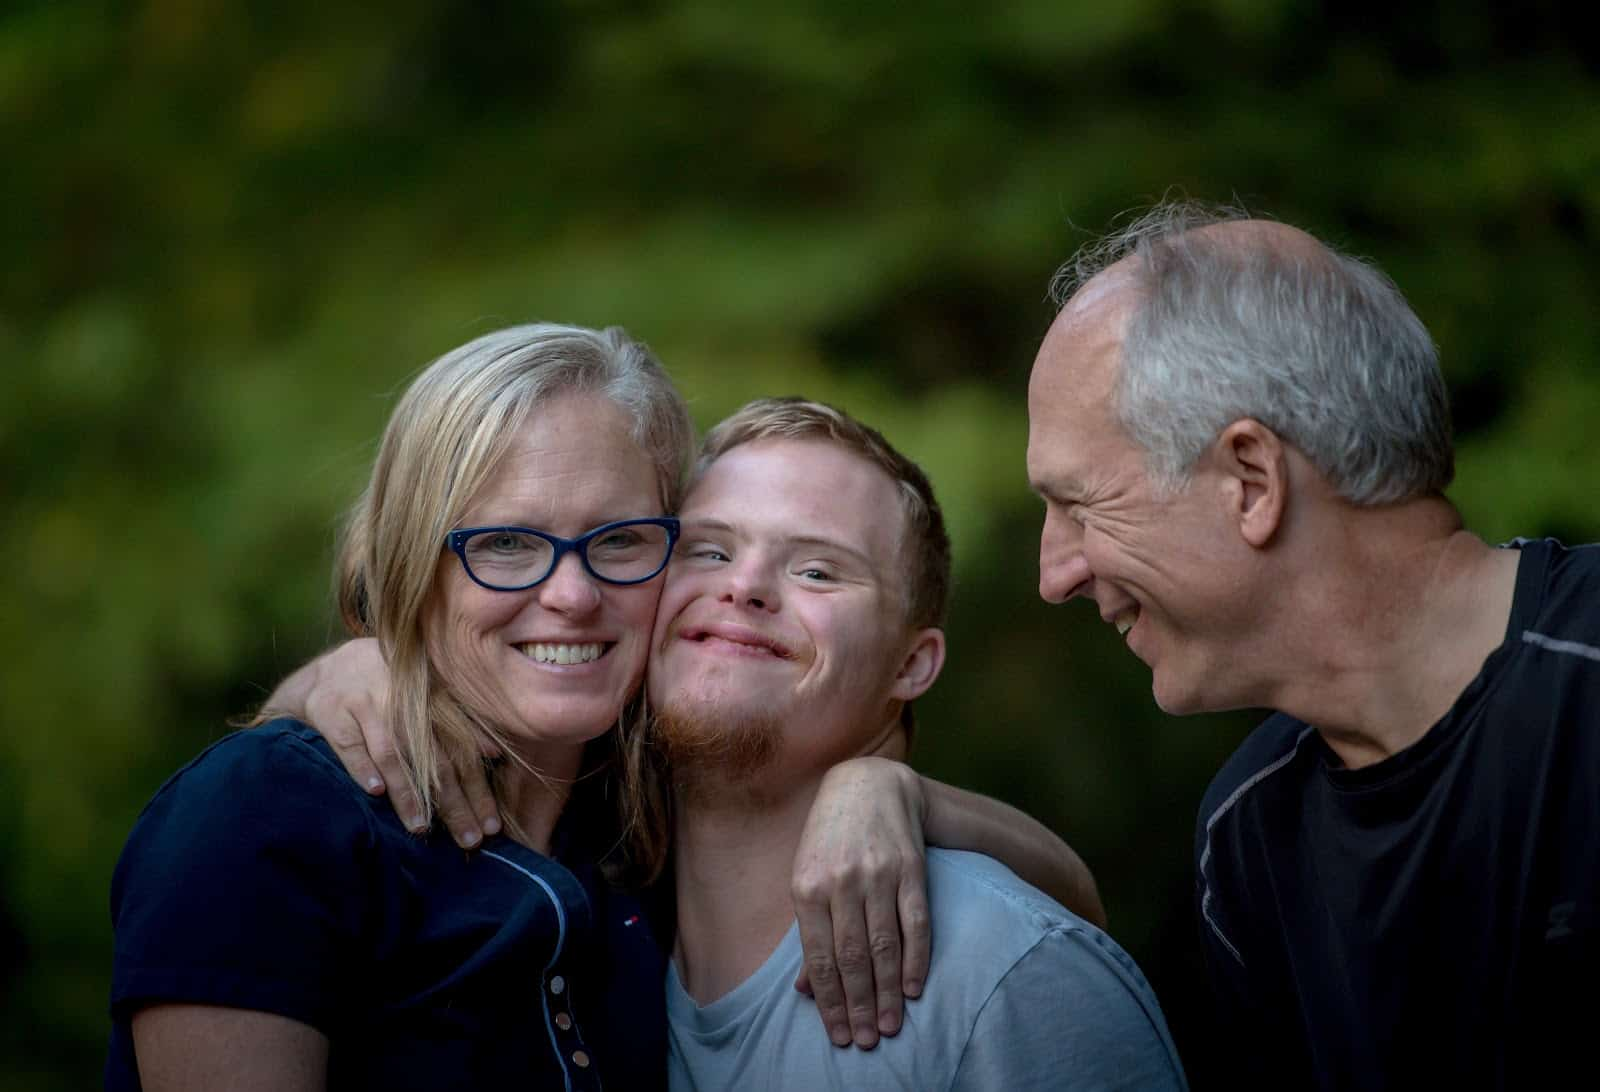 boy with disability smiling with his family